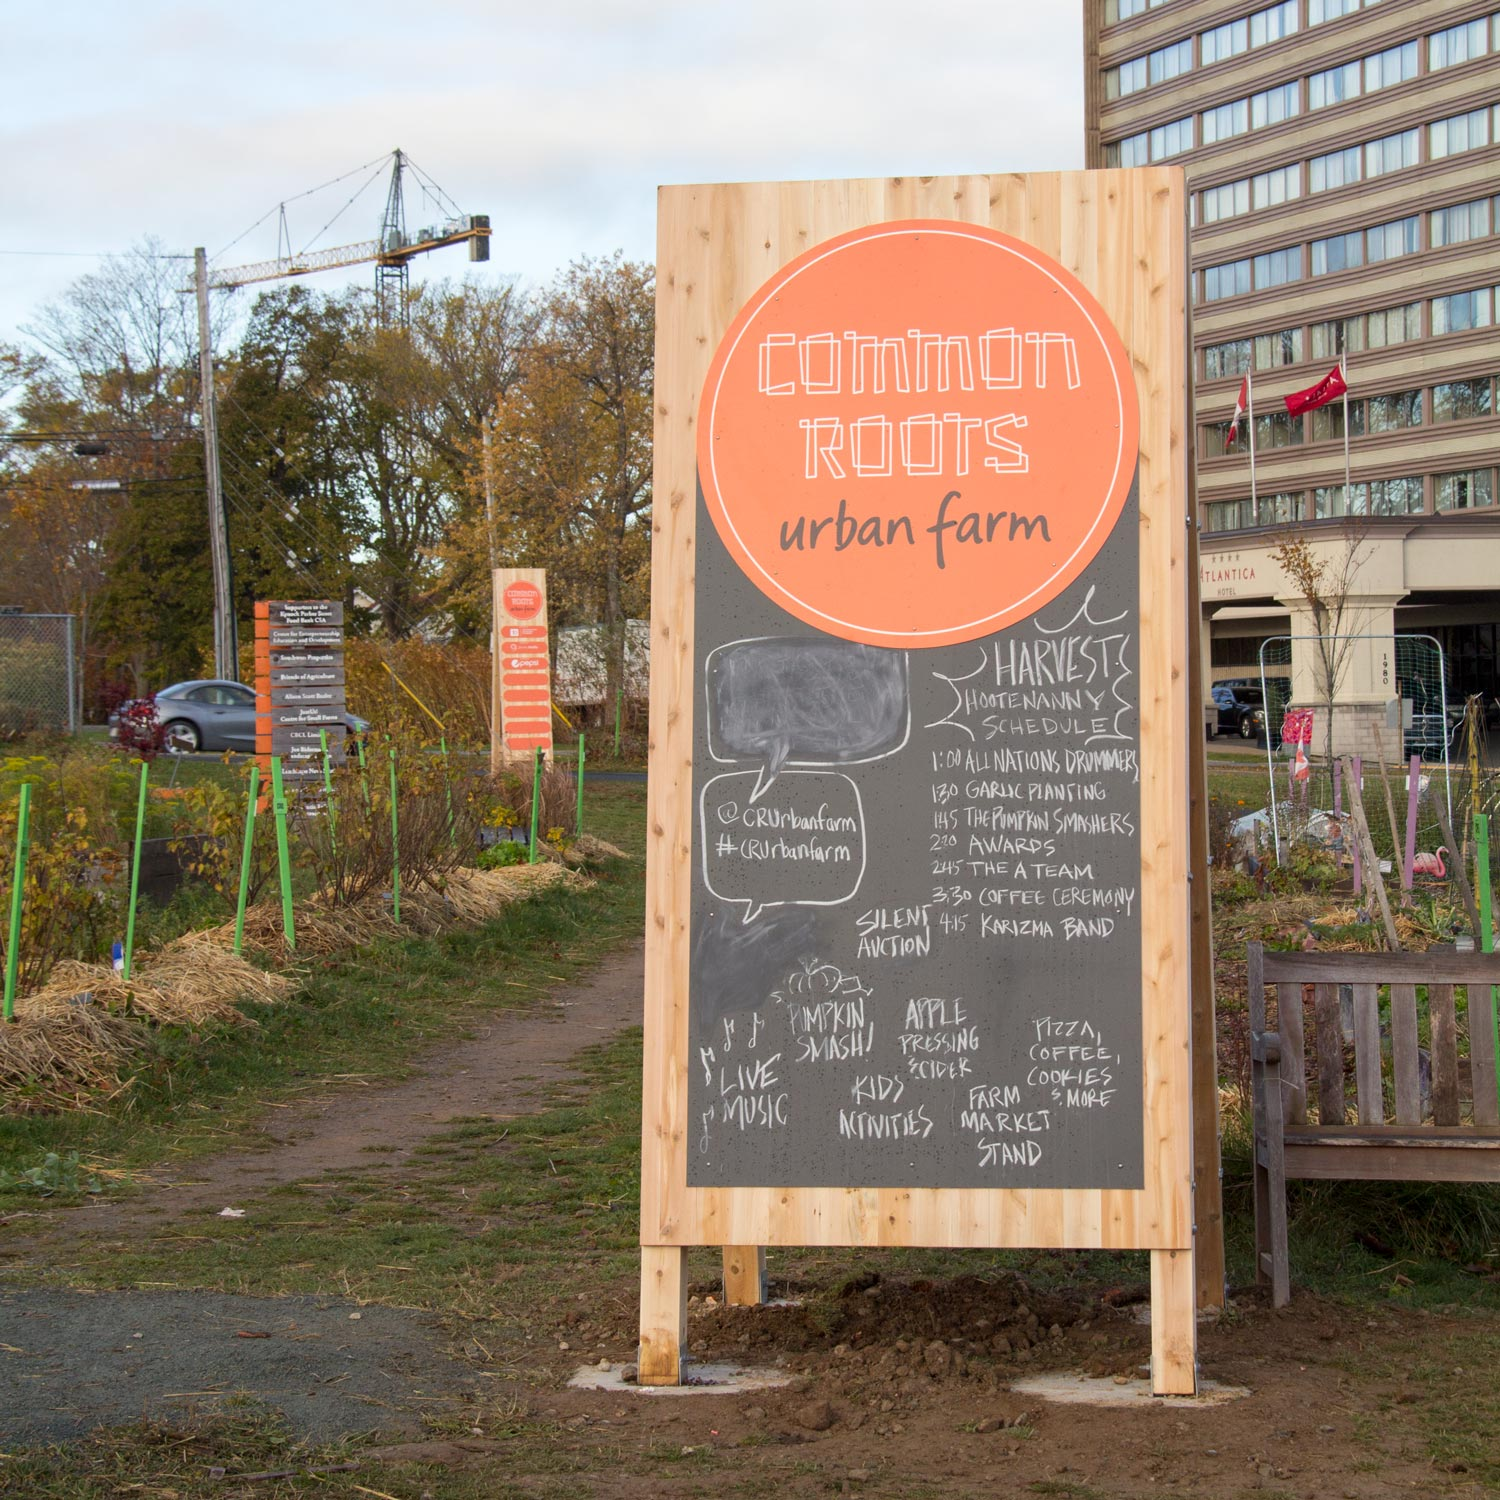 COMMON ROOTS URBAN FARM Chalkboards make it easy for the farm to communicate always-fresh information to visitors.